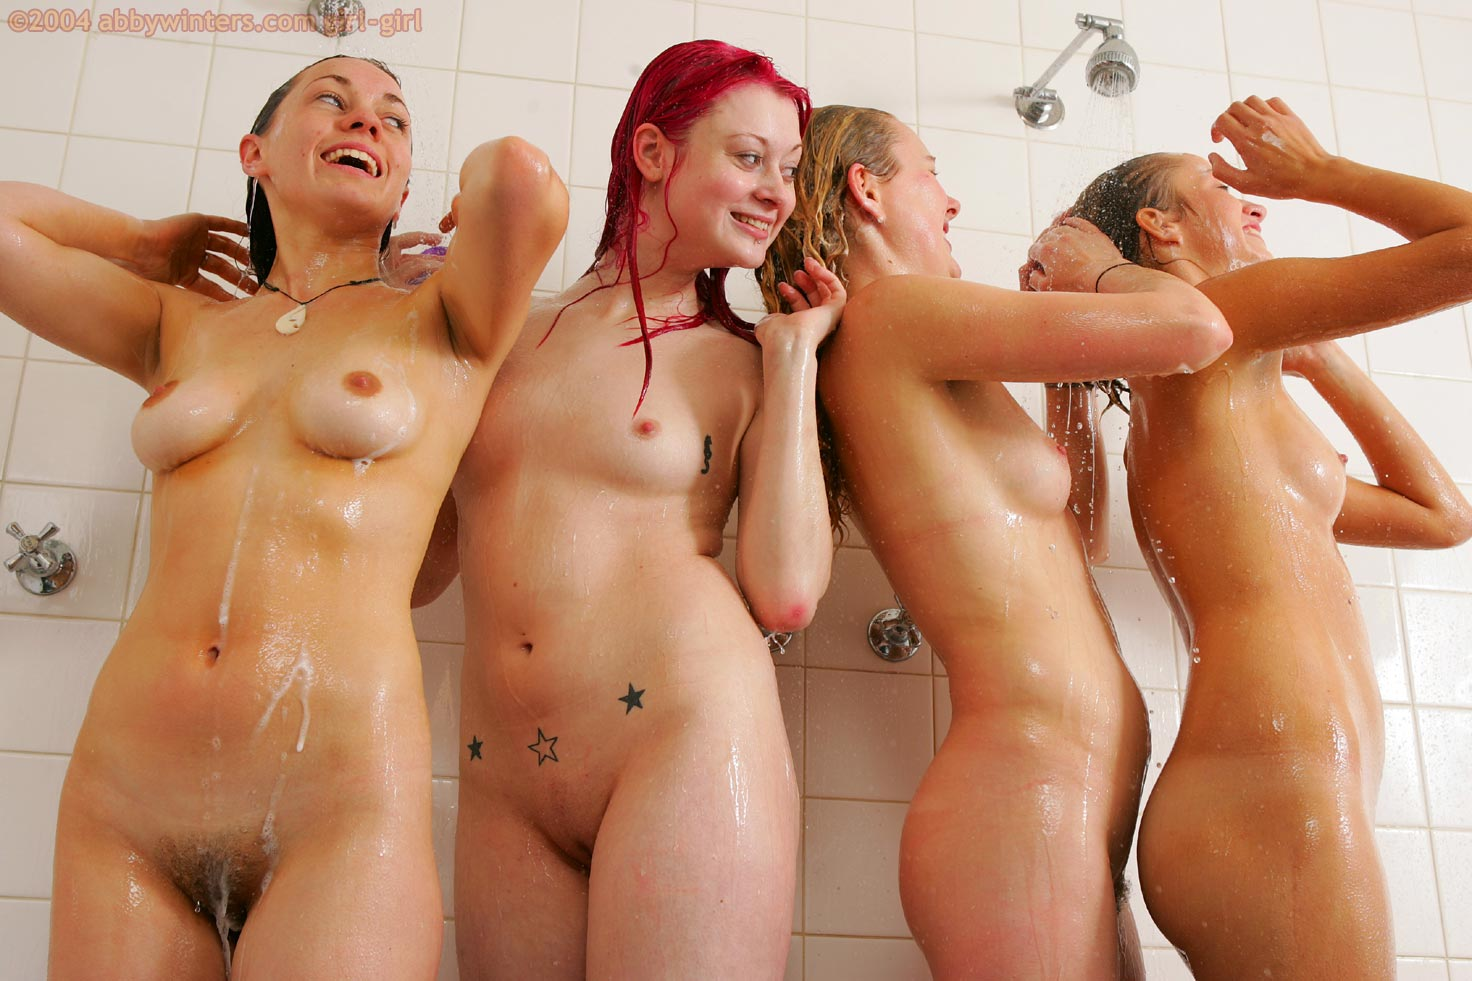 nude women showering together